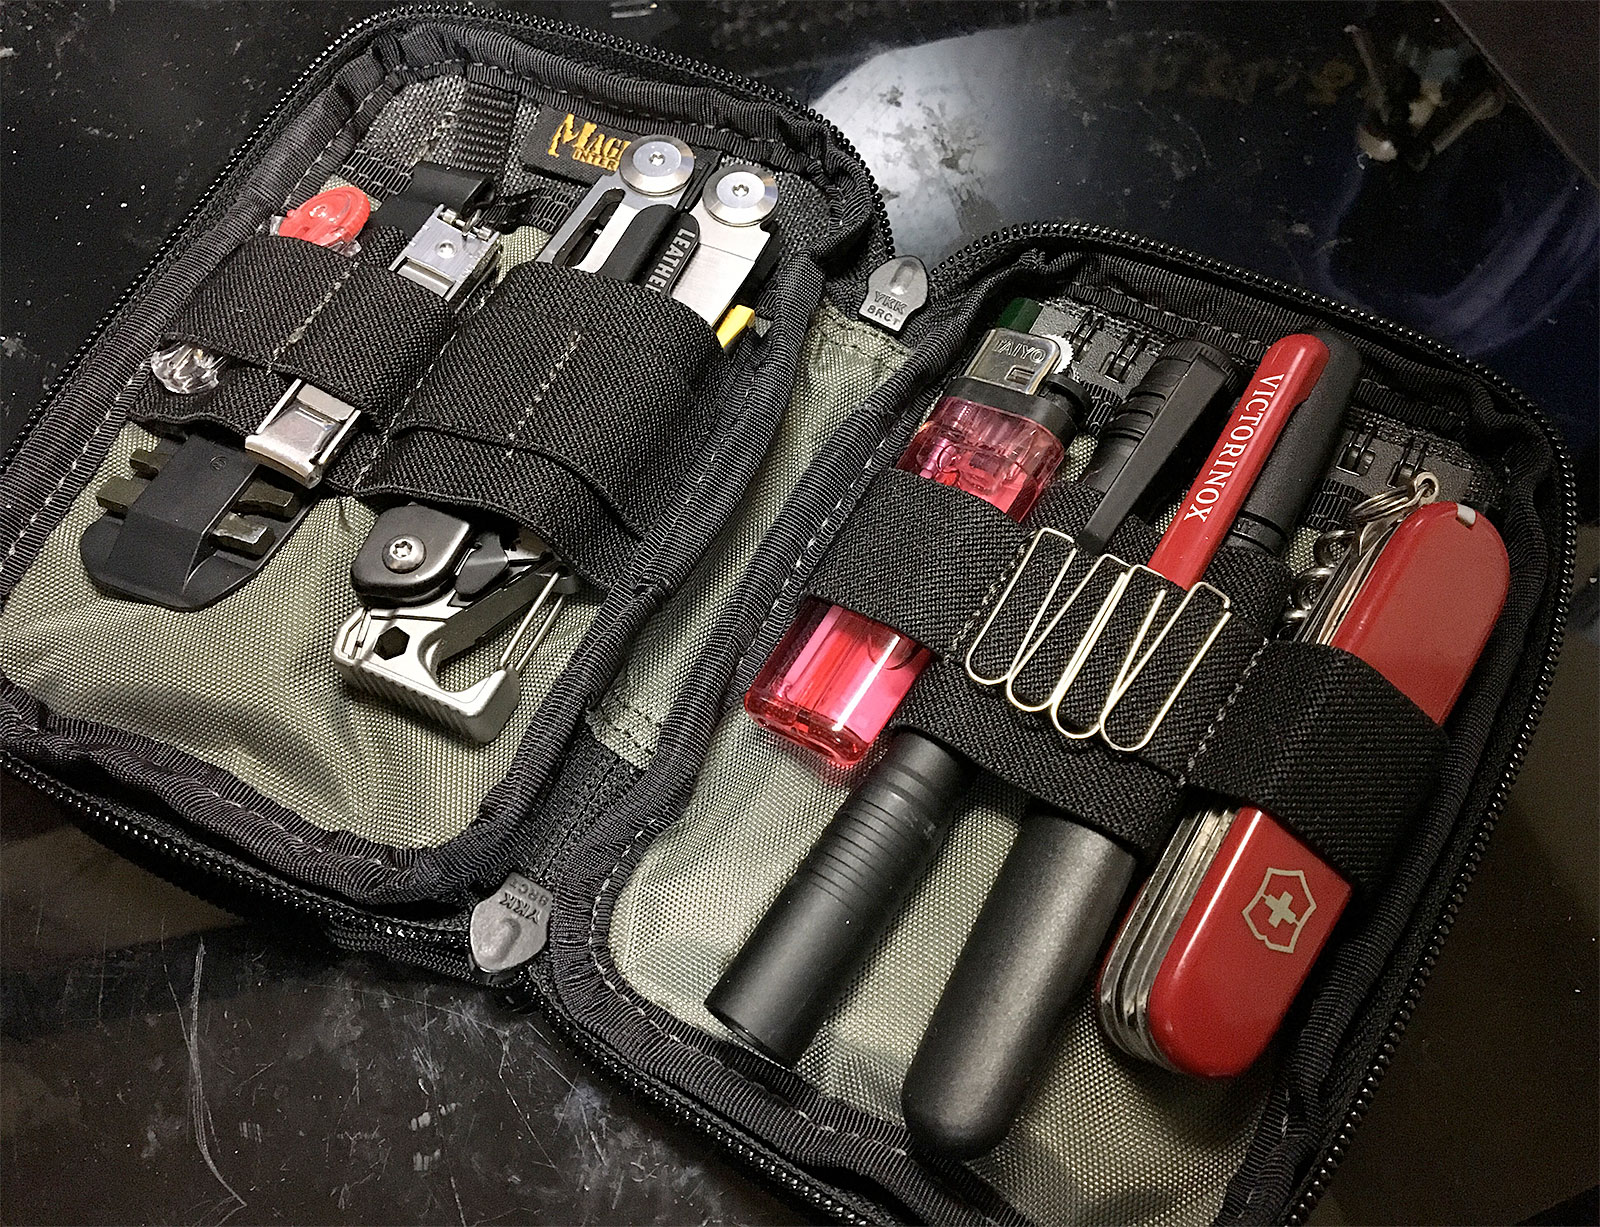 Maxpedition E.D.C. Pocket Organizer Closeup inside with tools